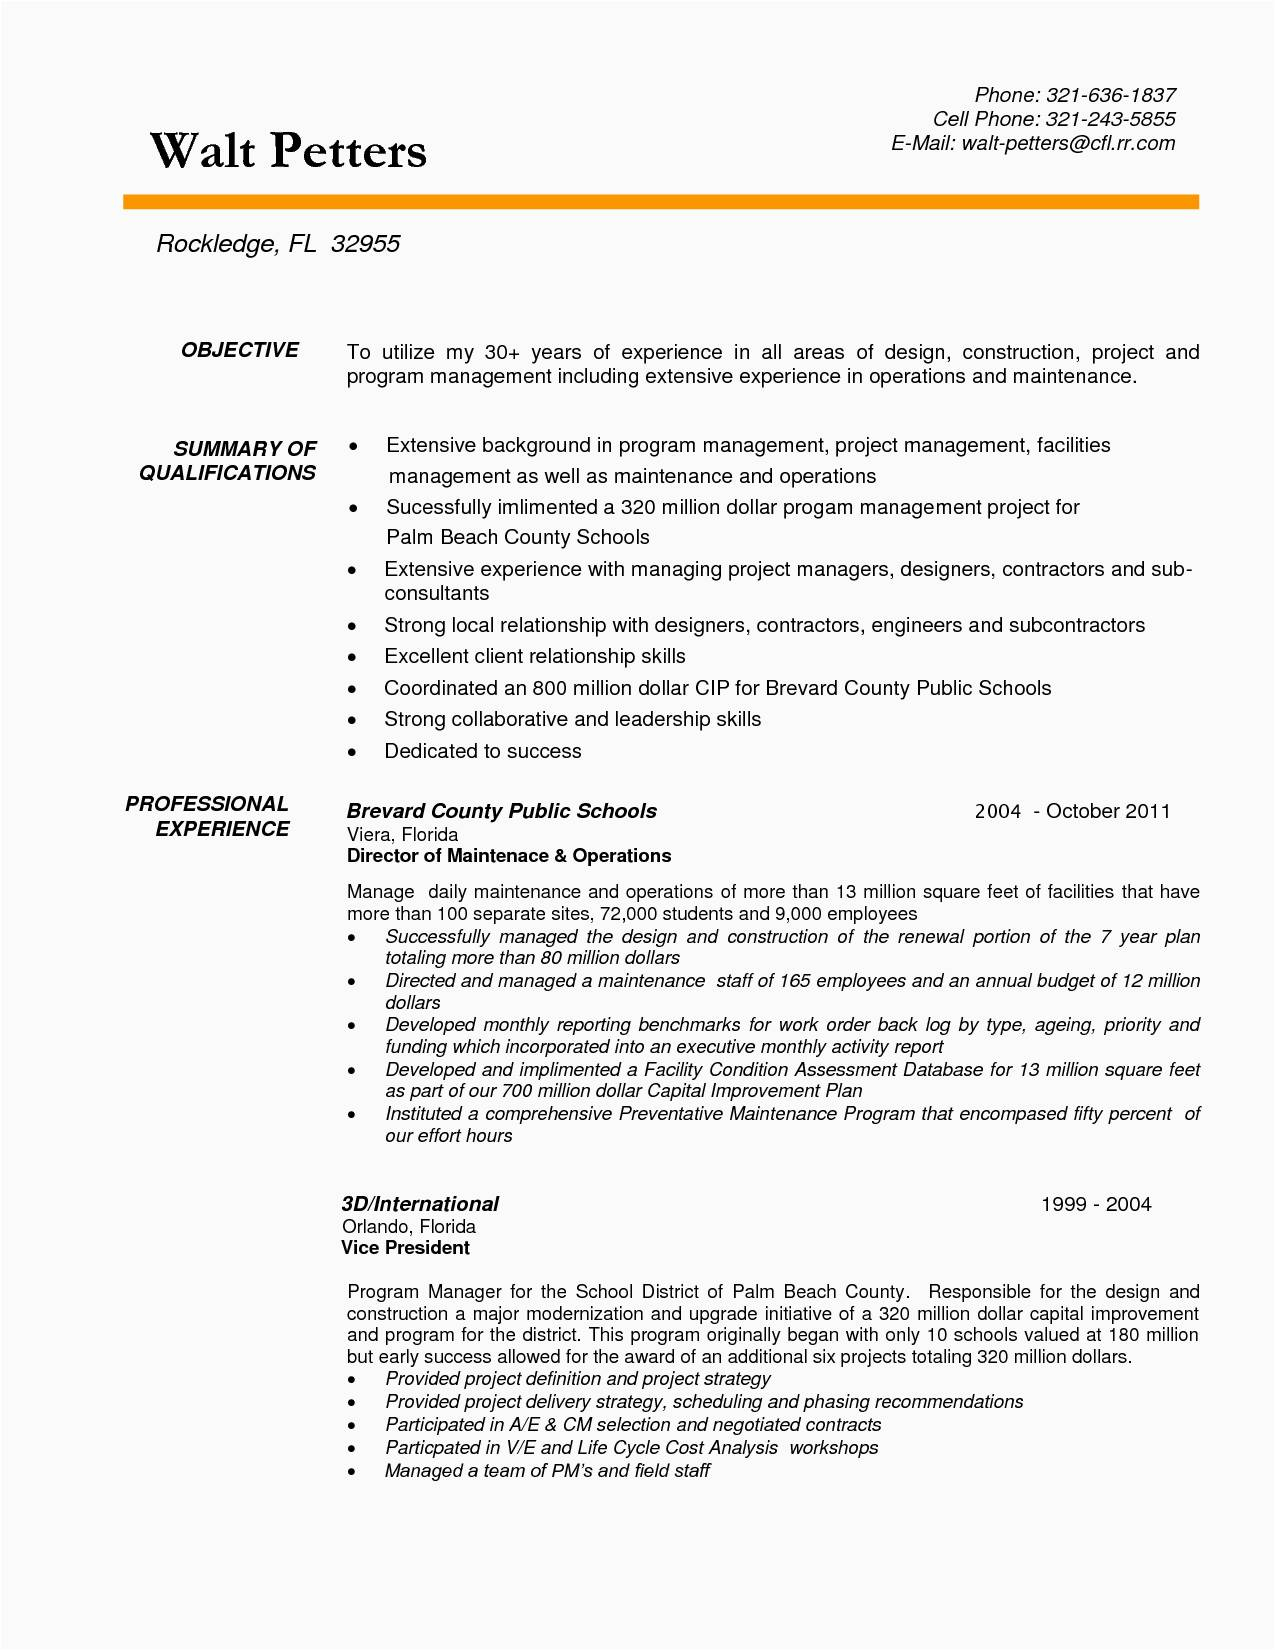 Project Burn Rate Spreadsheet For Project Management Burn Rate Template Construction Manager Resume 10